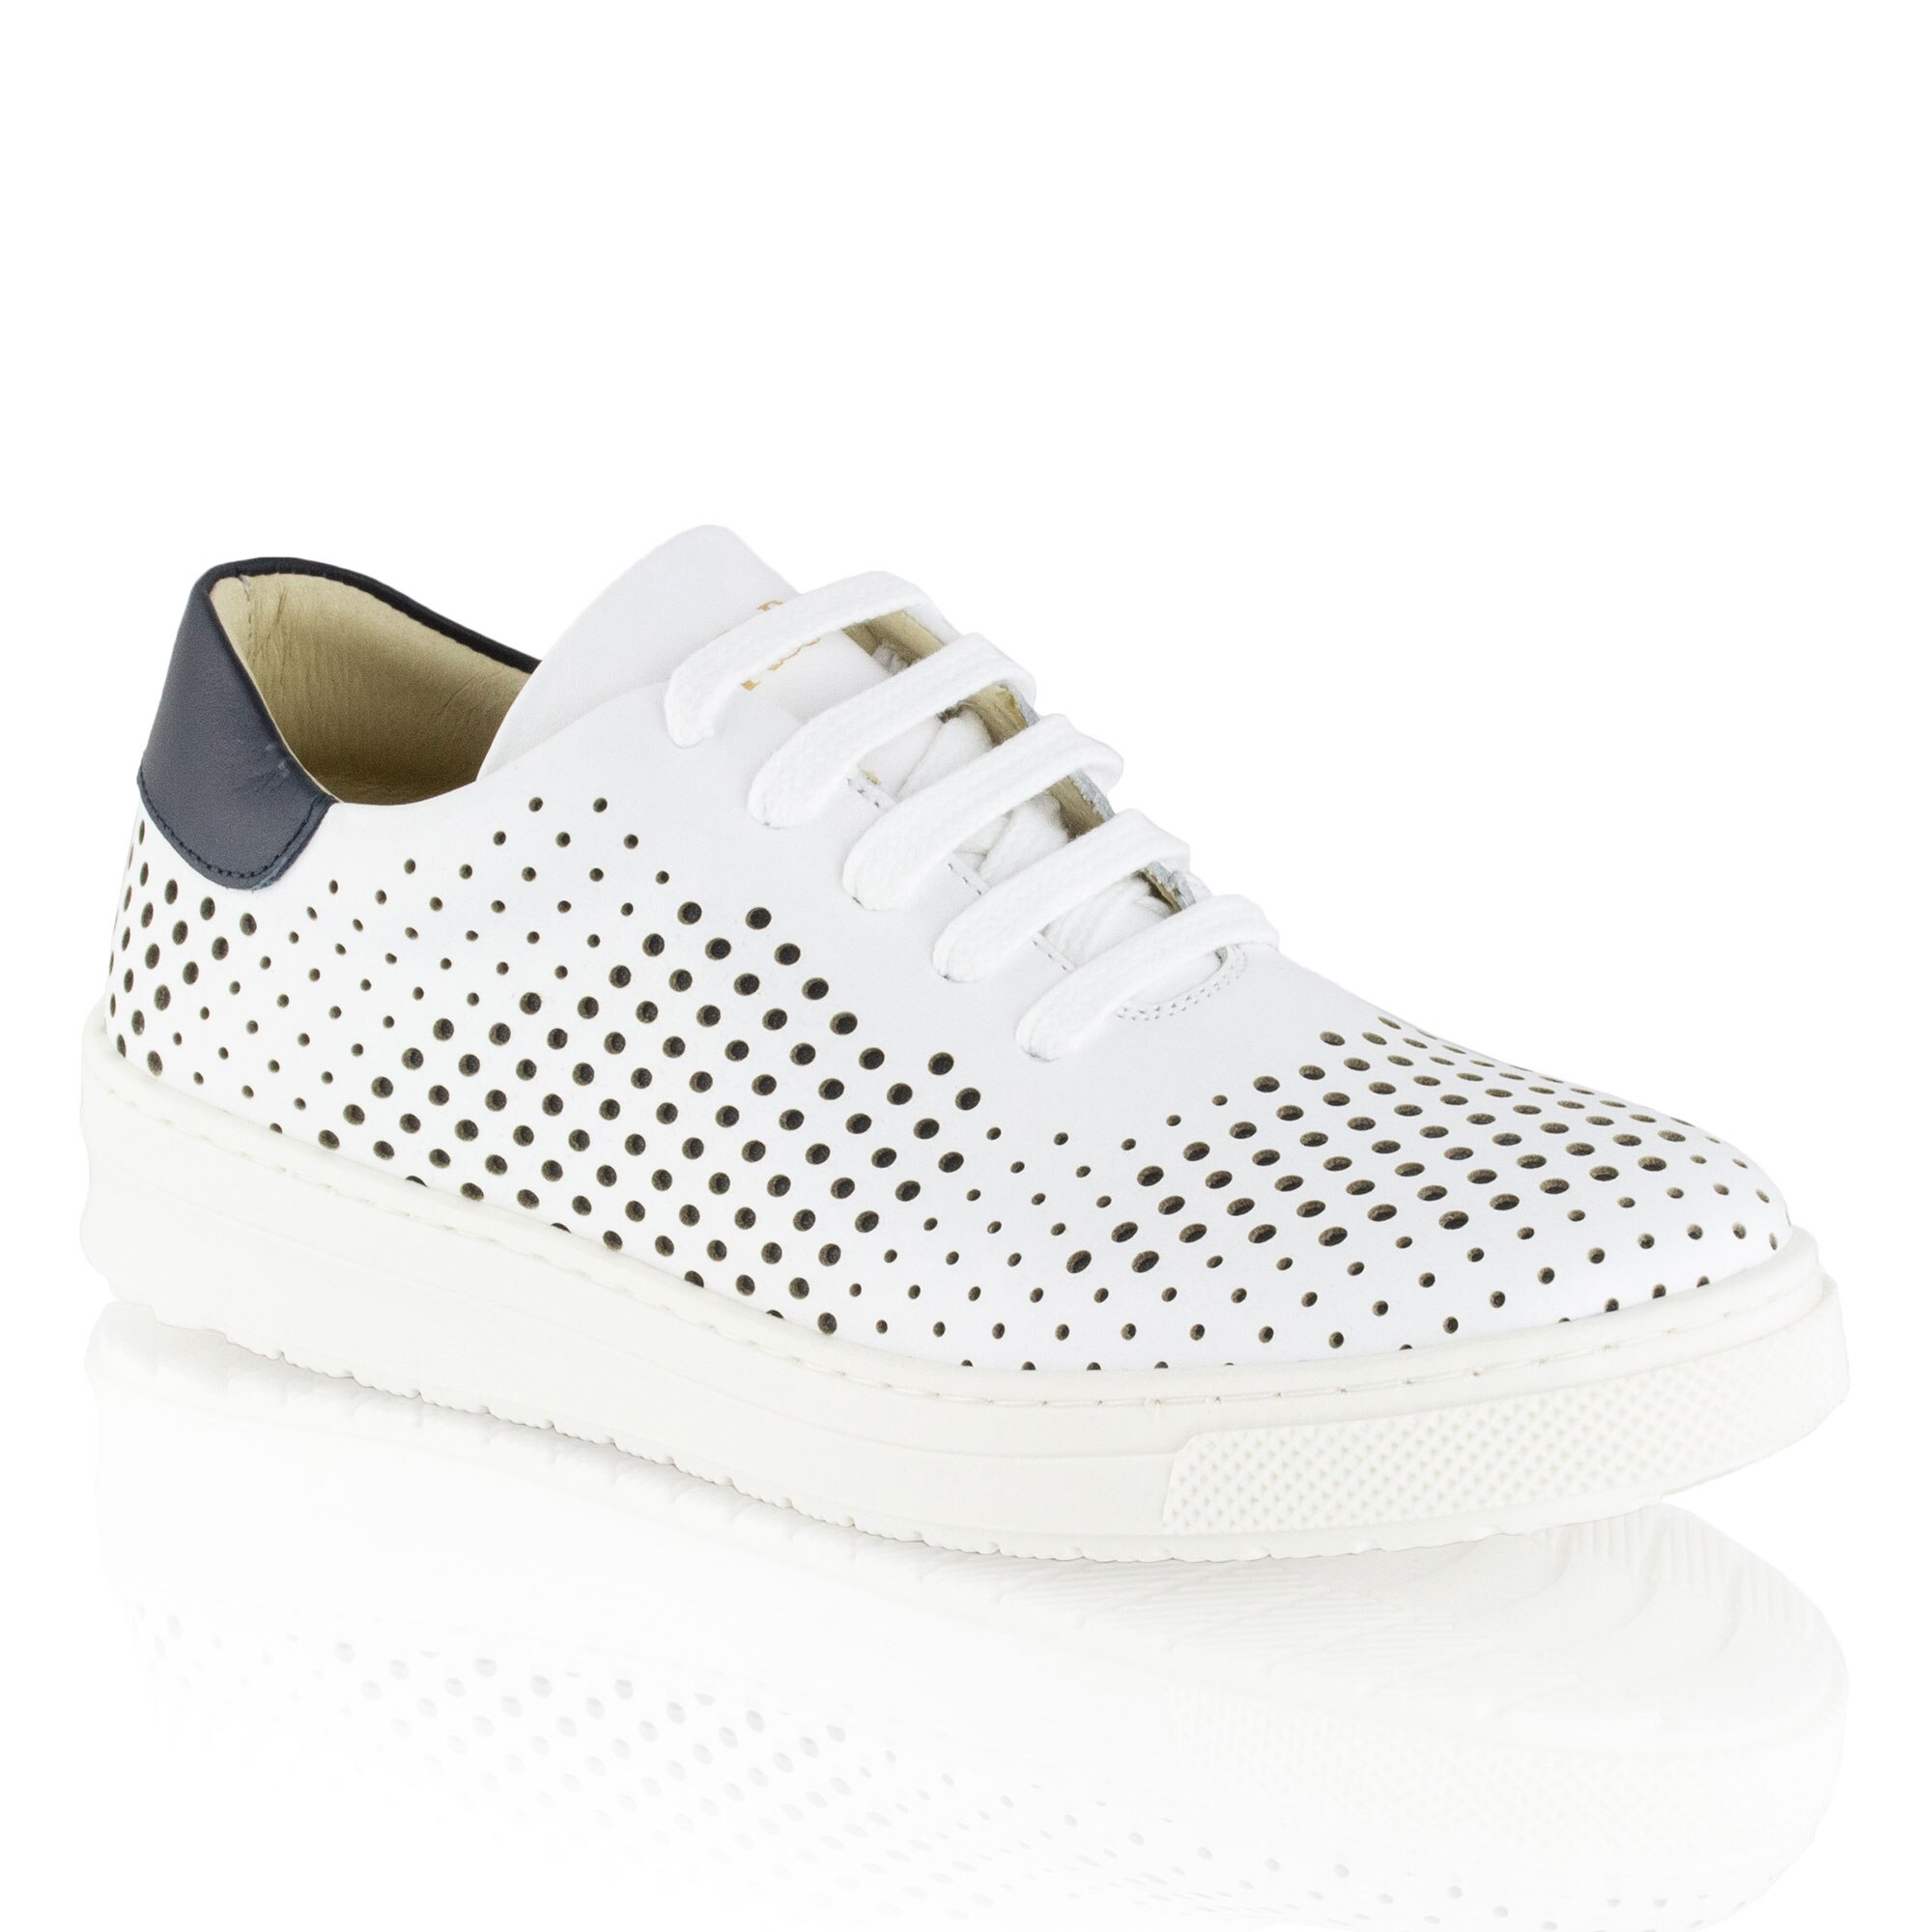 Russell and Bromley WHOLEPUNCH Lace-Up Sneaker